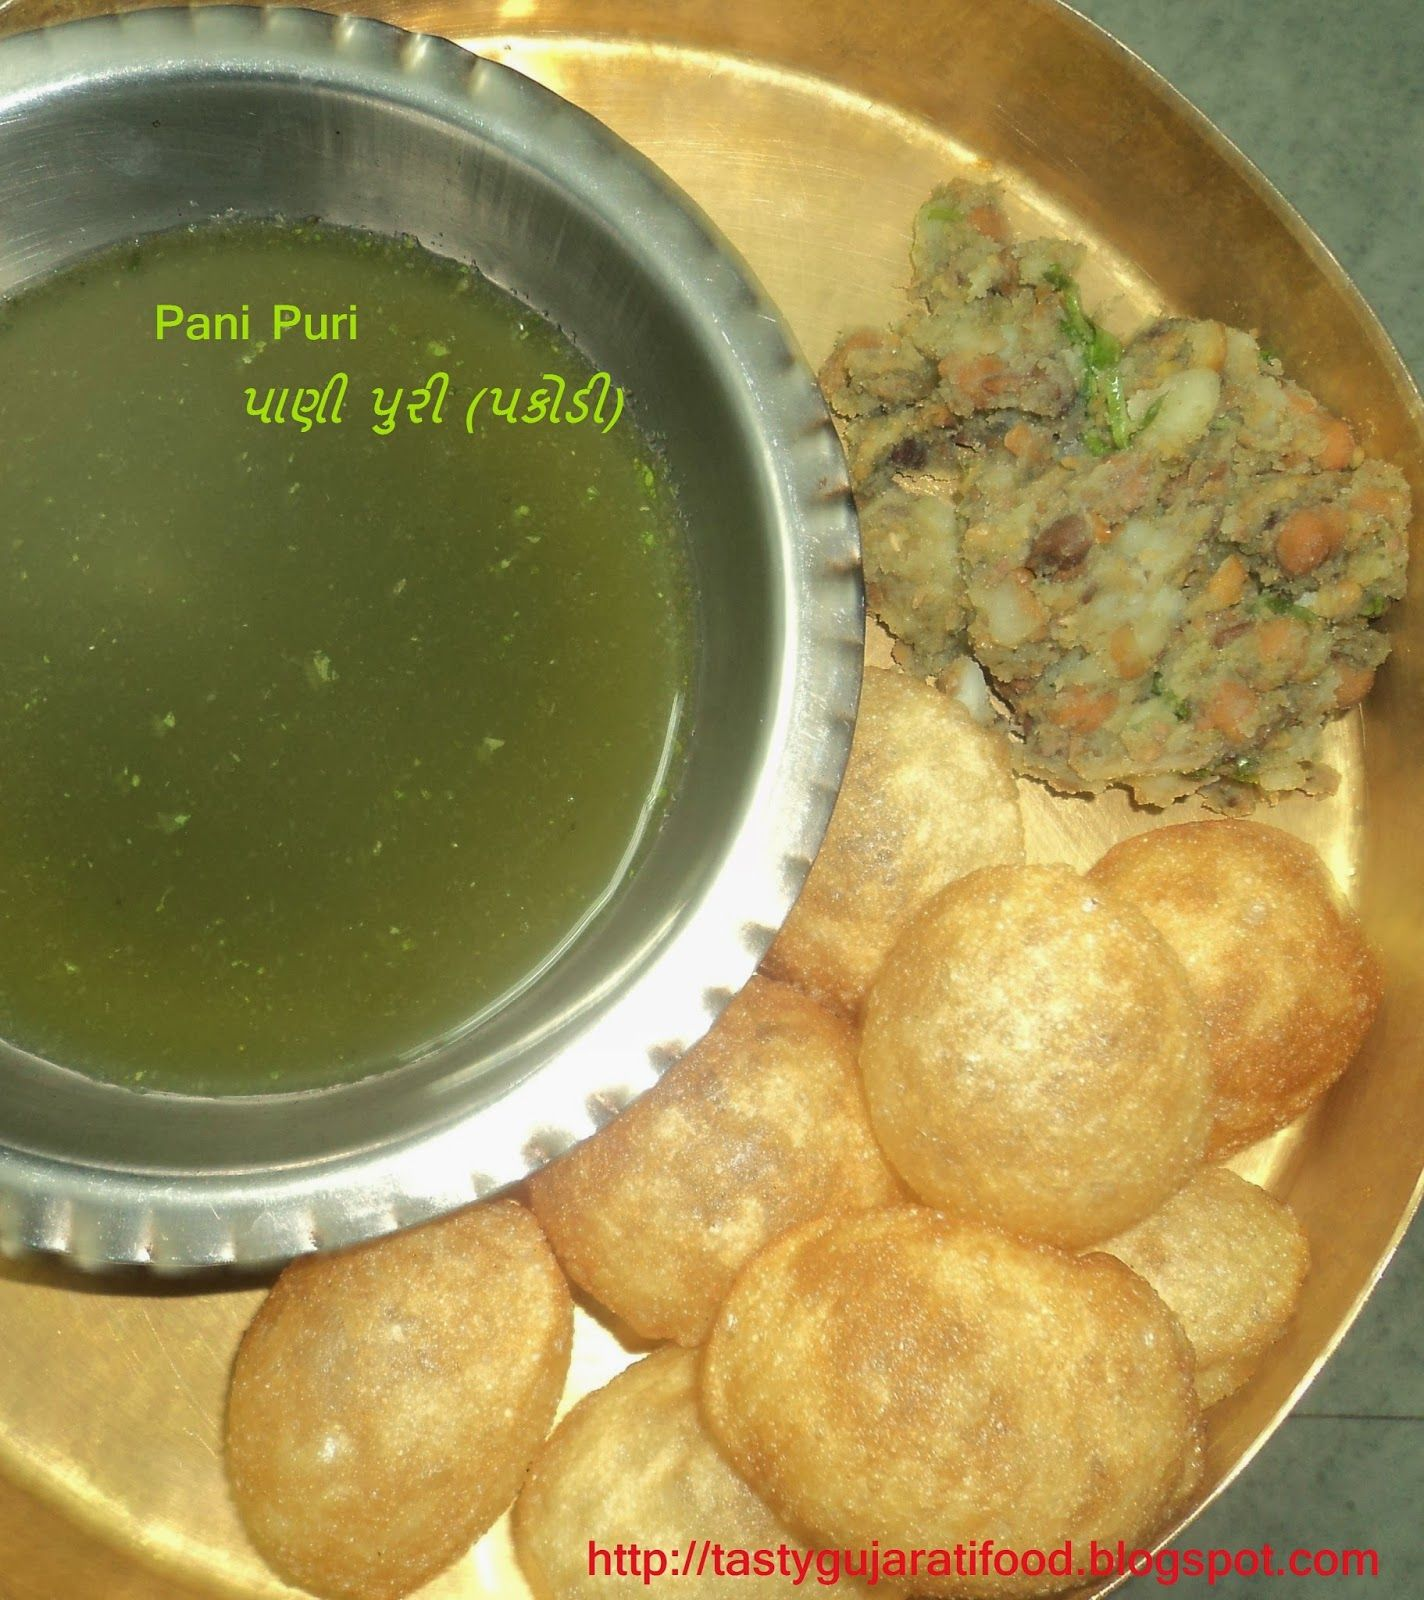 Pani puri pakodi recipe in gujarati language by tasty gujarati pani puri pakodi recipe in gujarati language by tasty gujarati food recipes blog every ones favorite light snack made with chick pea potato mint forumfinder Images